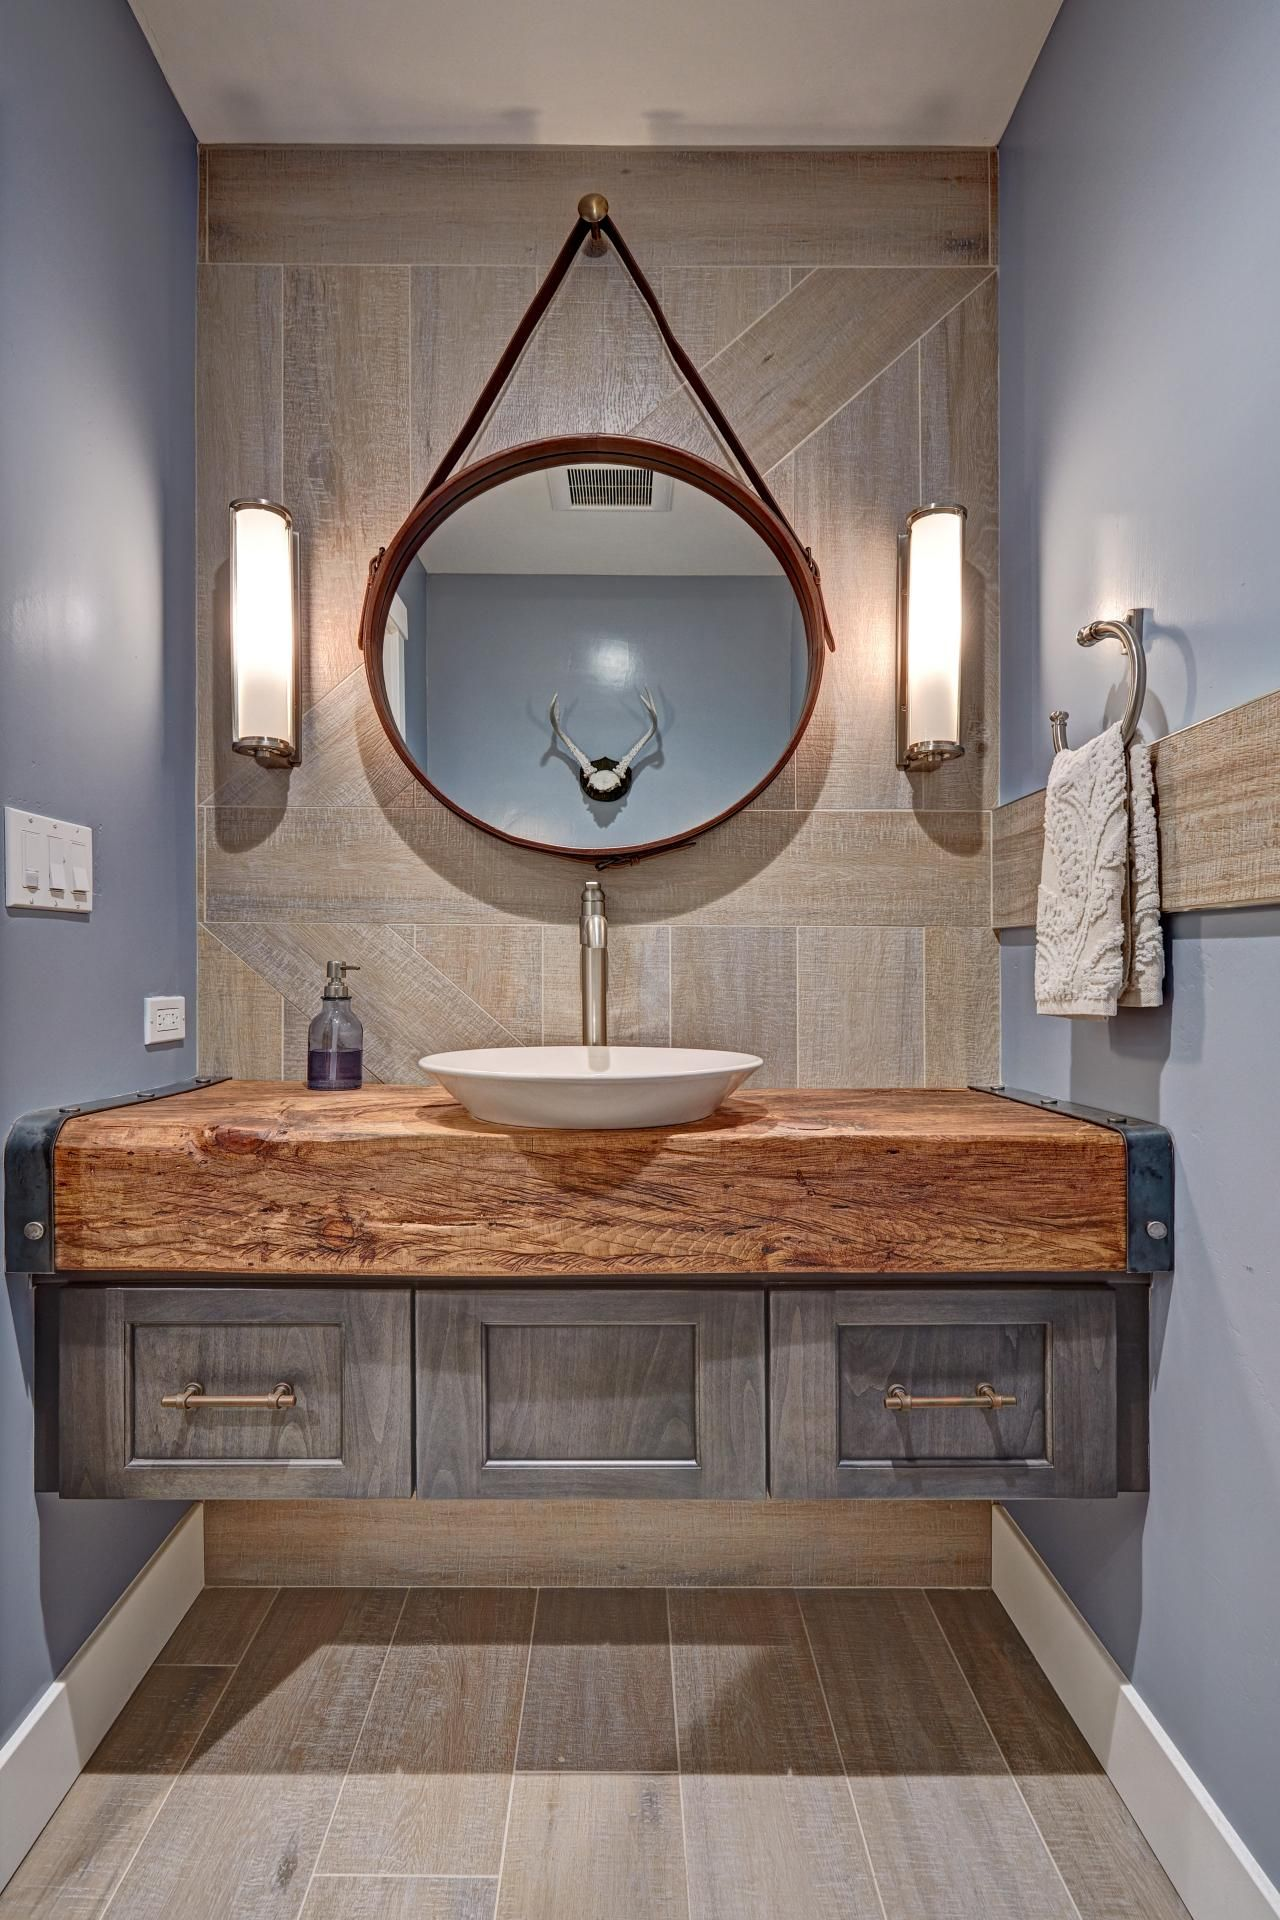 This bathroom features both earthy and industrial elements and